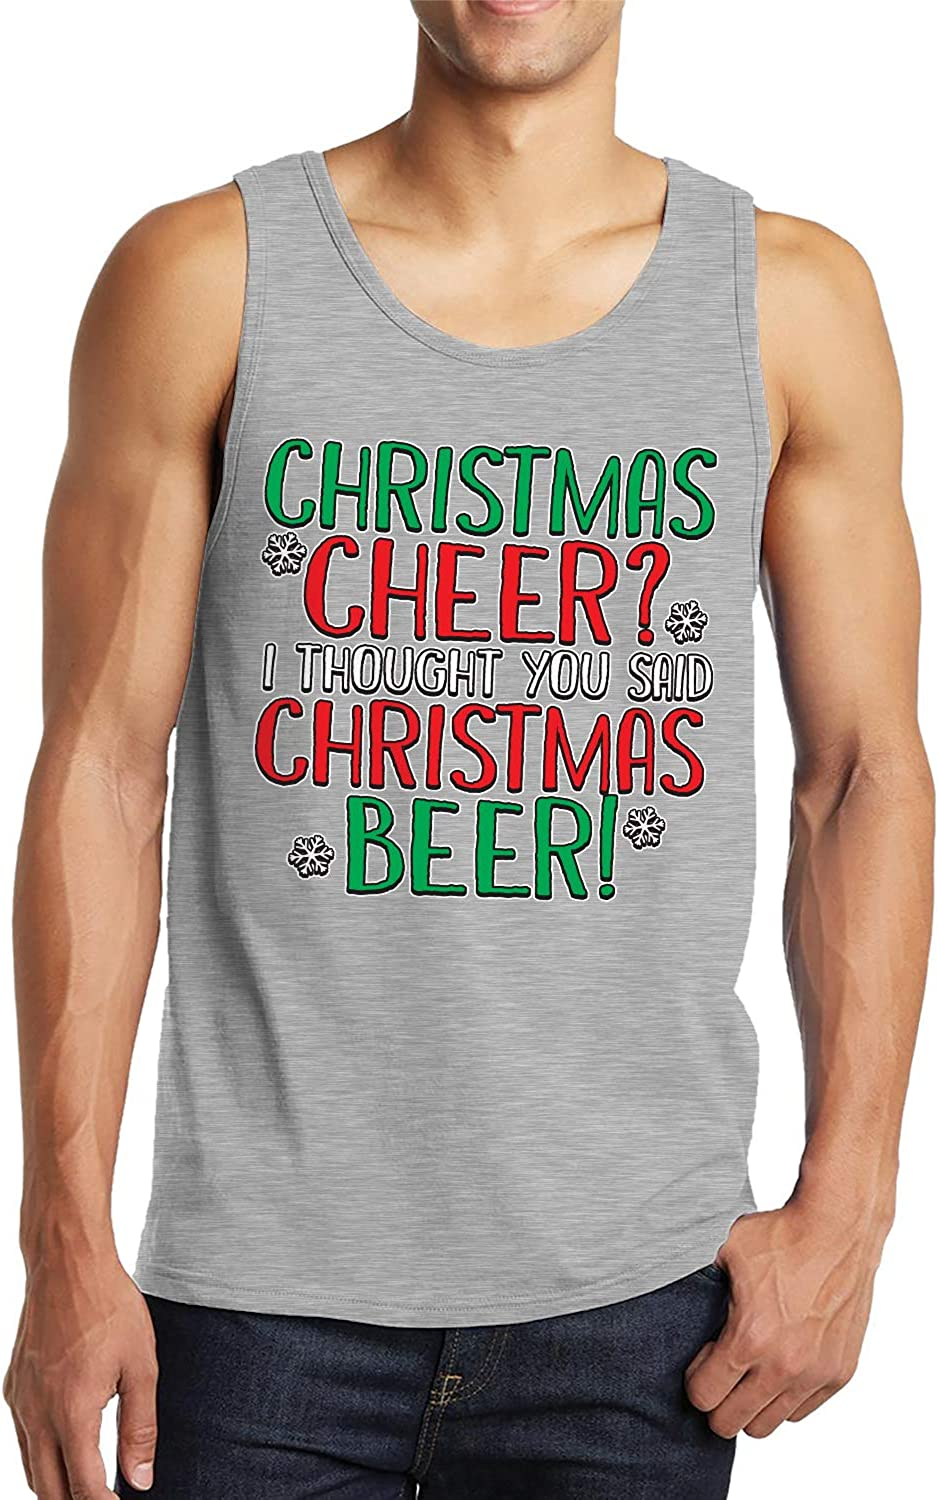 SpiritForged Apparel Christmas Max 53% OFF Online limited product Cheer? I You Christm Thought Said